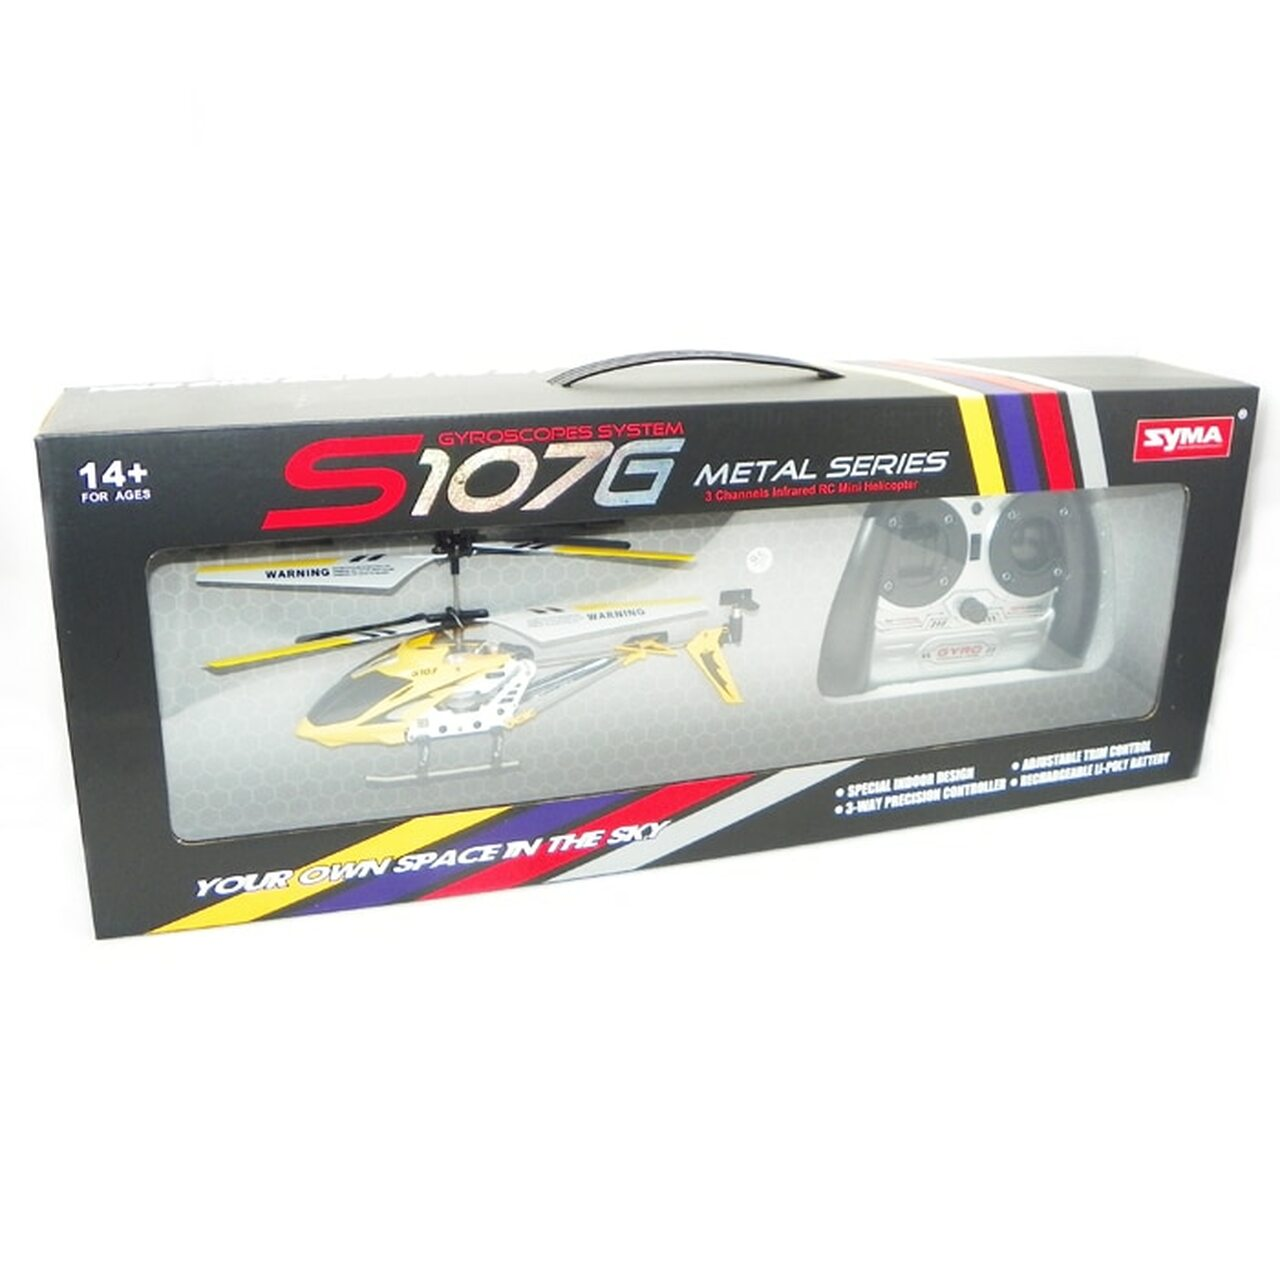 Original Syma S107G S107 3 5CH RC Helicopter with Gyro Radio Control Metal  Alloy Fuselage R/C Helicopter Toys